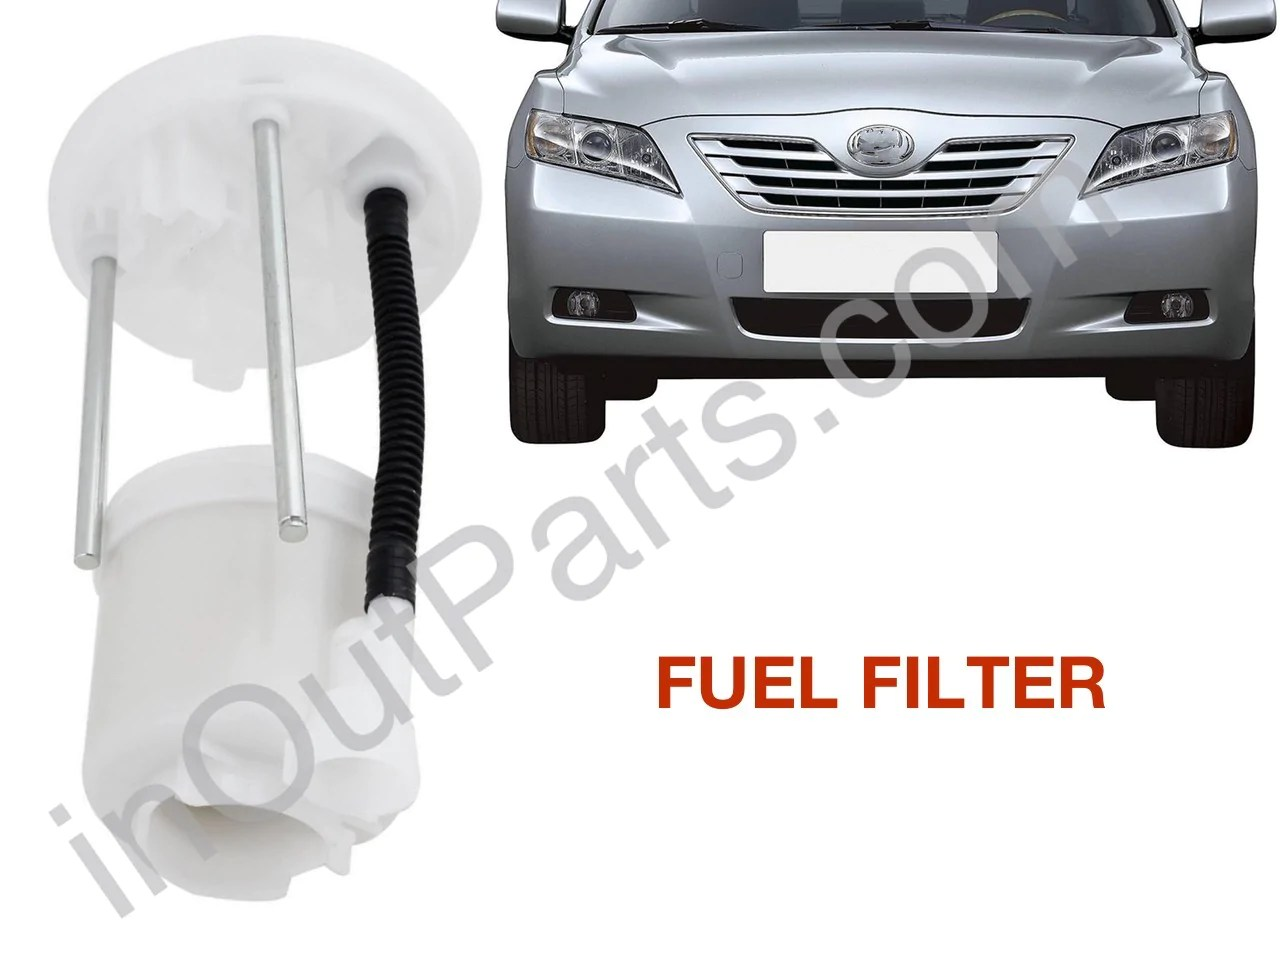 small resolution of fuel filter toyota camry 2azfe 2006 2007 2008 2009 2010 2011 2012 1990 toyota pickup fuel